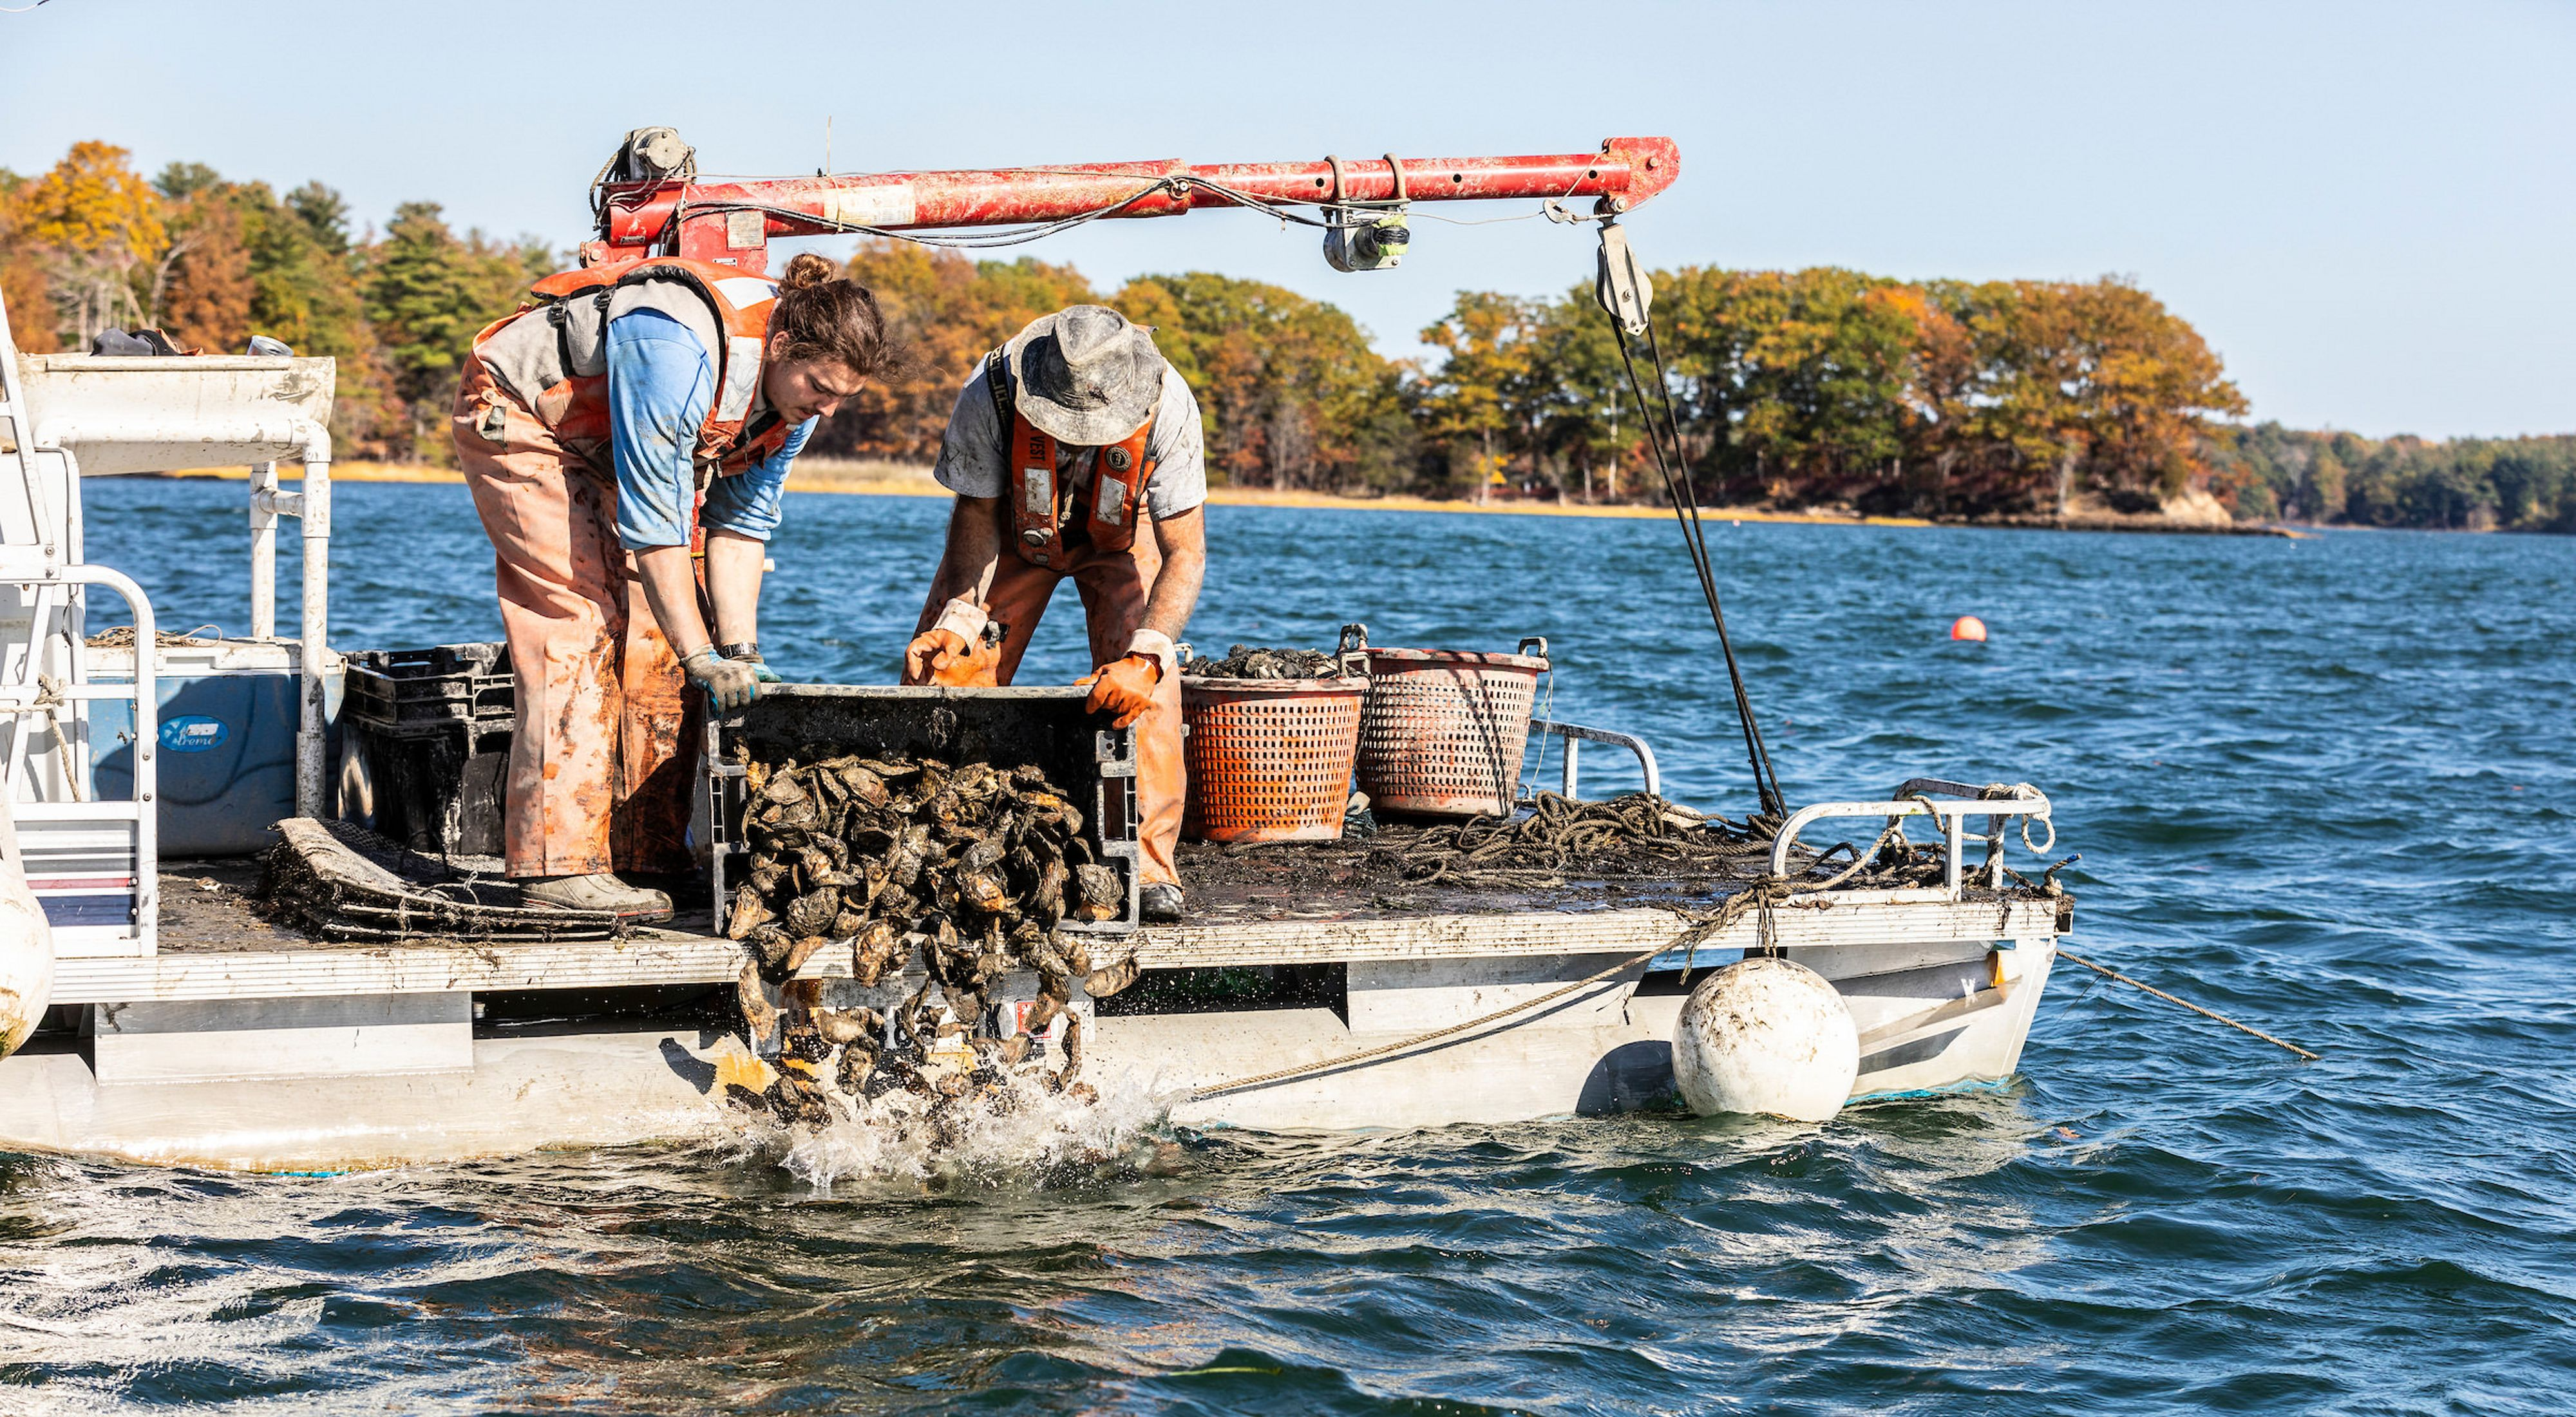 Brian Gennaco (right) of the Virgin Oyster Company and an employee add oysters to a restoration reef as part of the Supporting Oyster Aquaculture and Restoration (SOAR) program. Great Bay in Durham, New Hampshire.